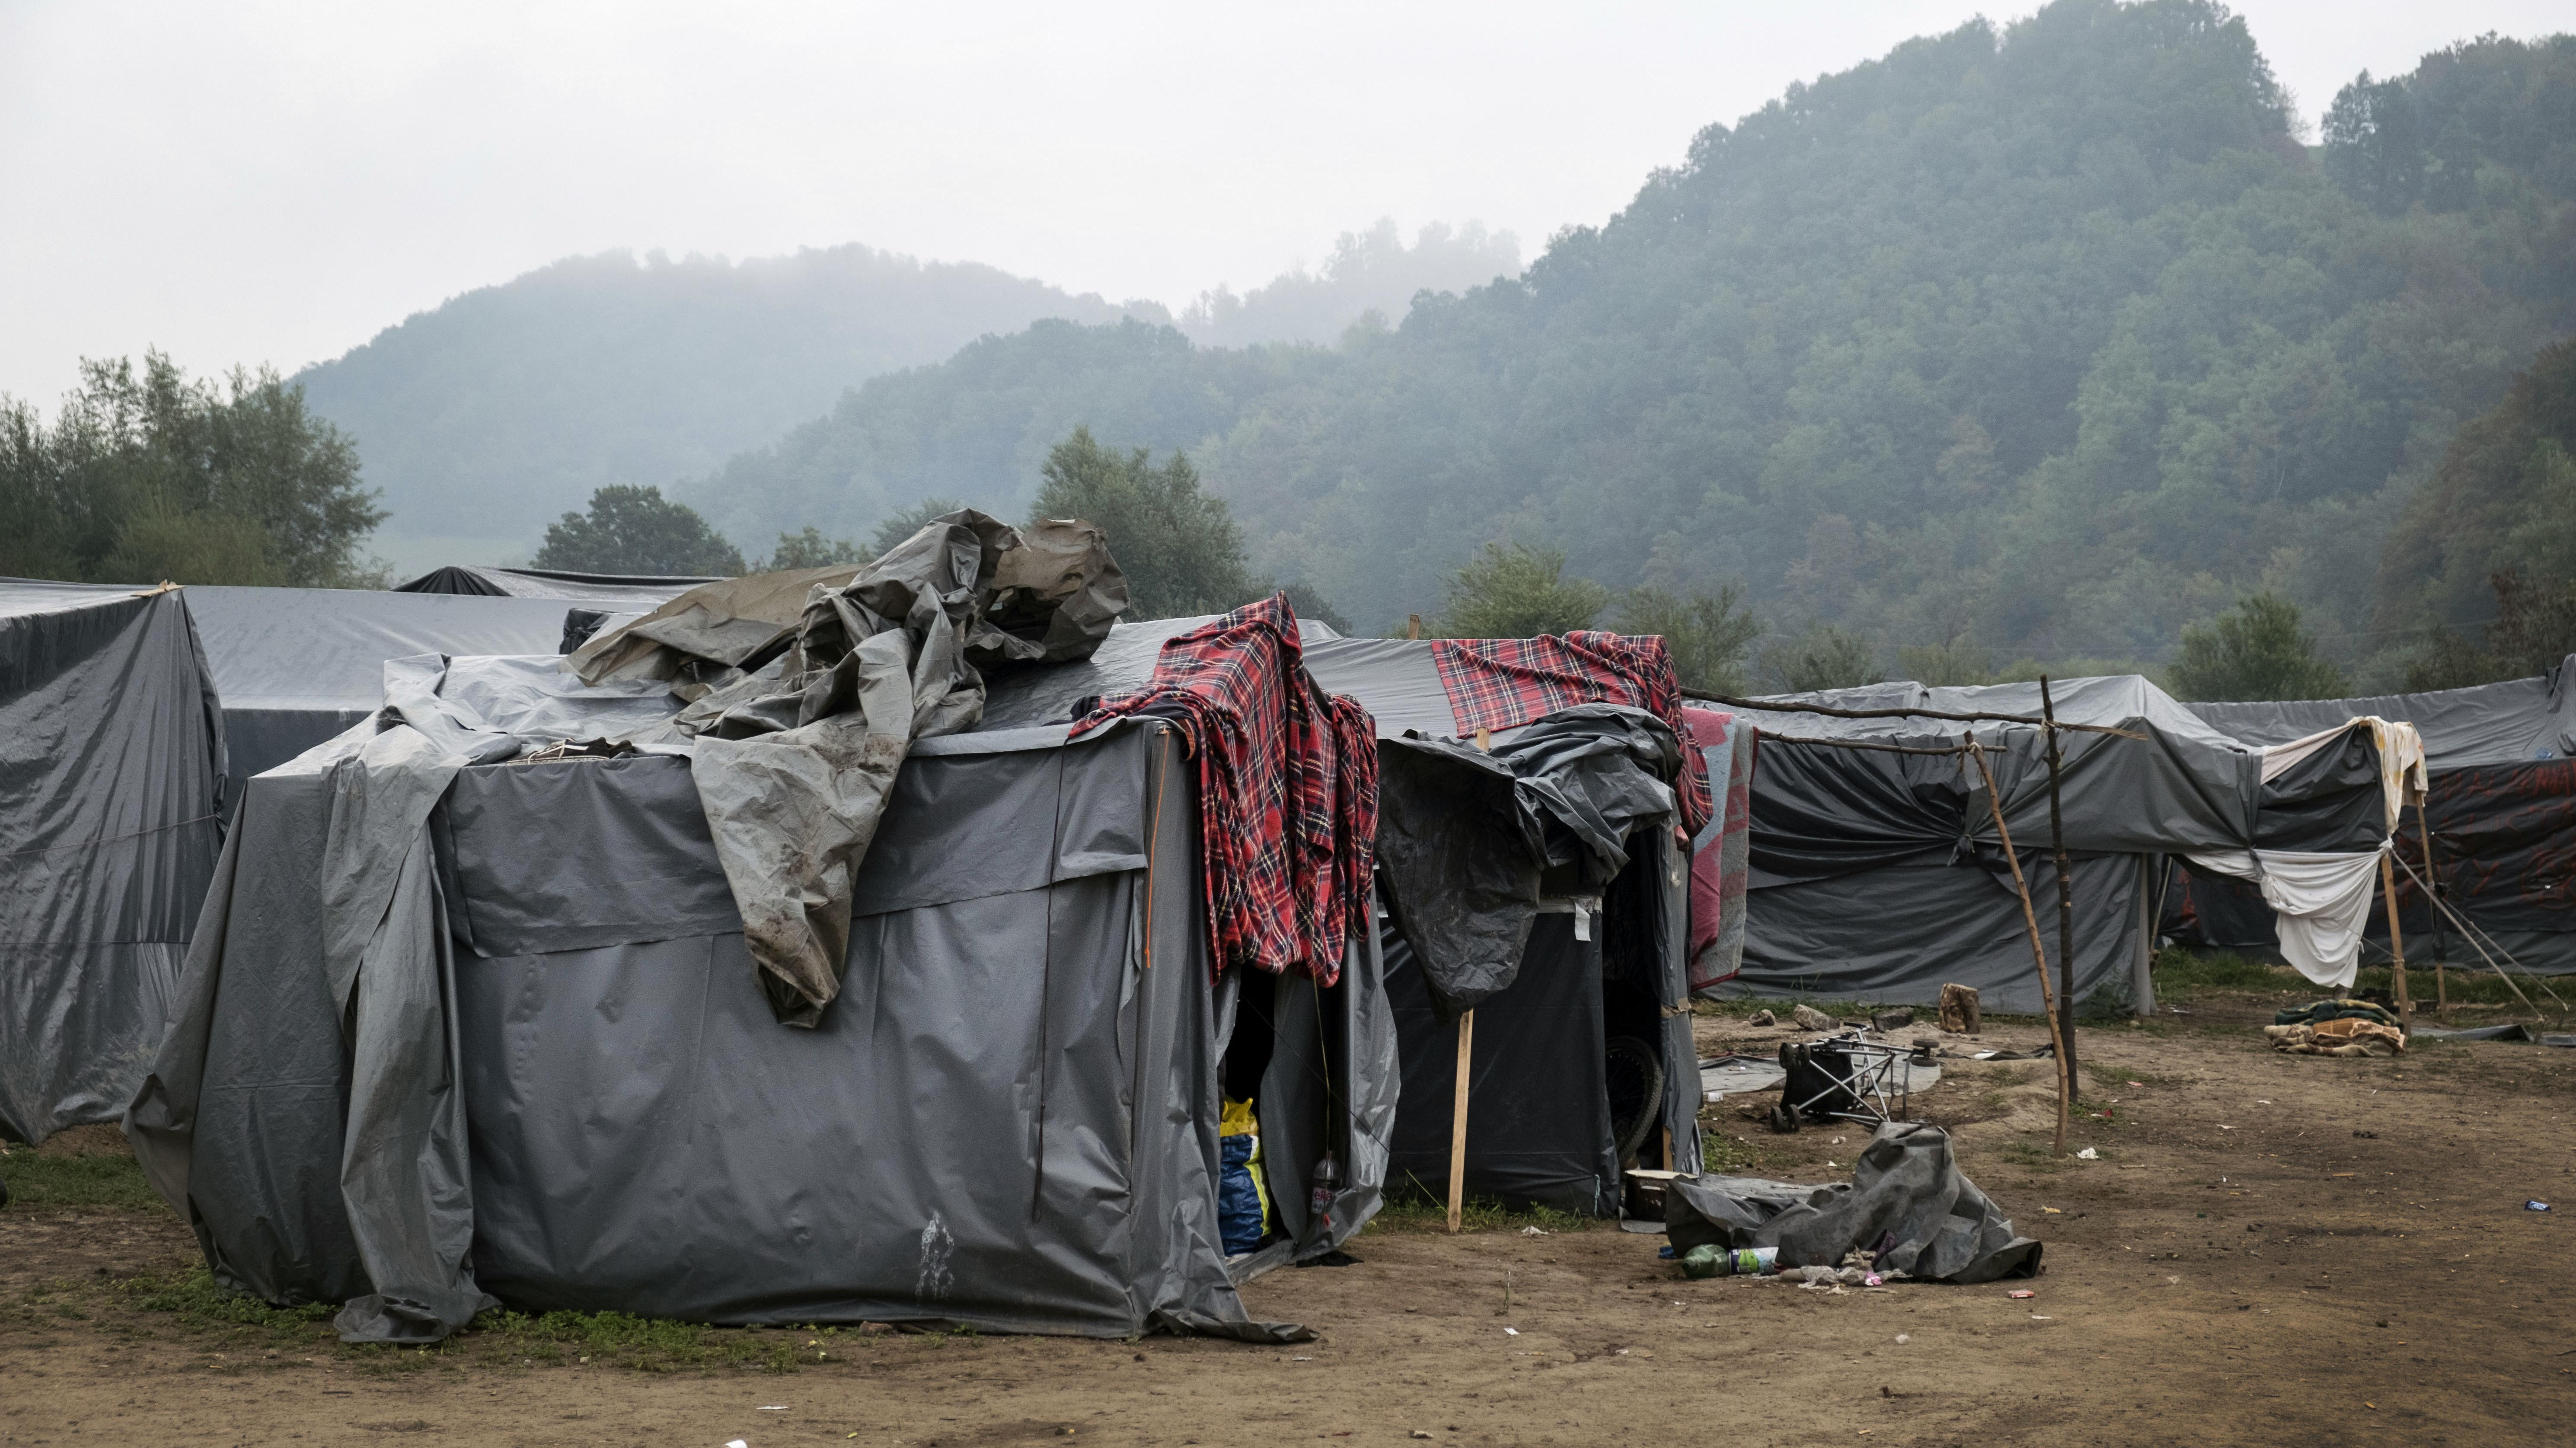 Wildes Camp in Bosnien nahe der Grenze zu Kroatien